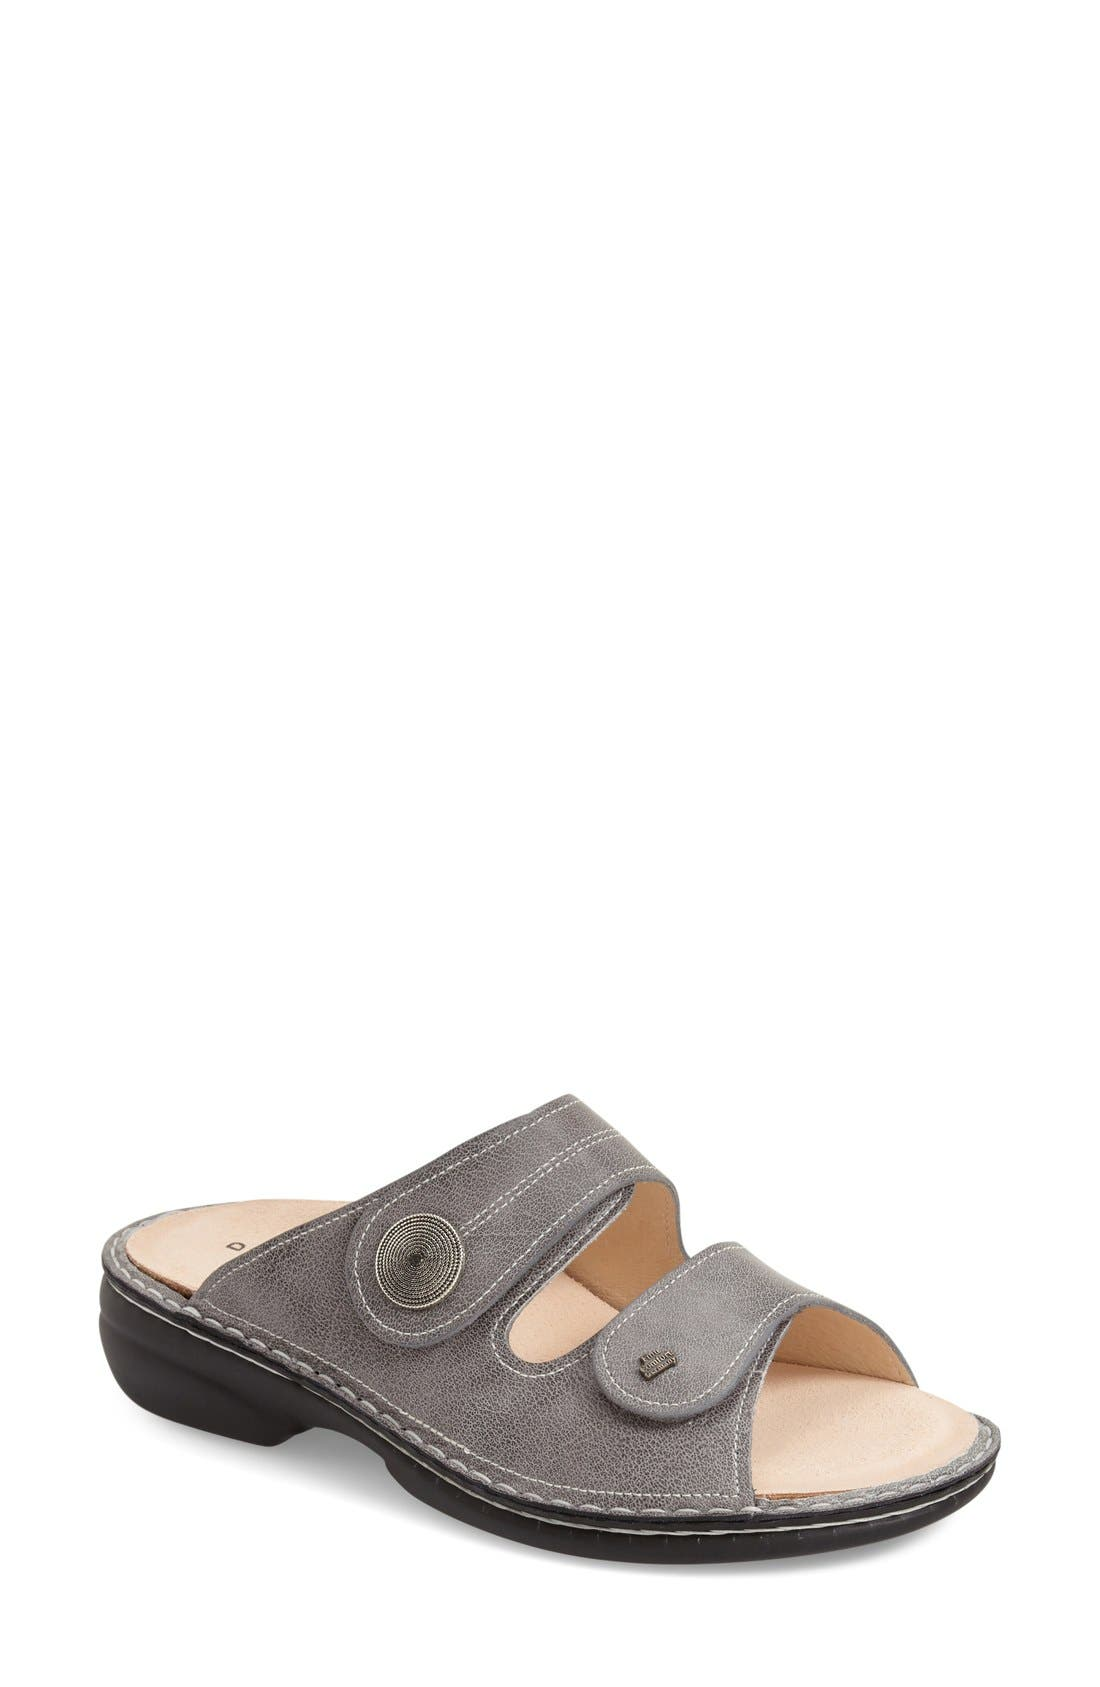 'Sansibar' Sandal,                             Main thumbnail 1, color,                             Grey Nappa Leather